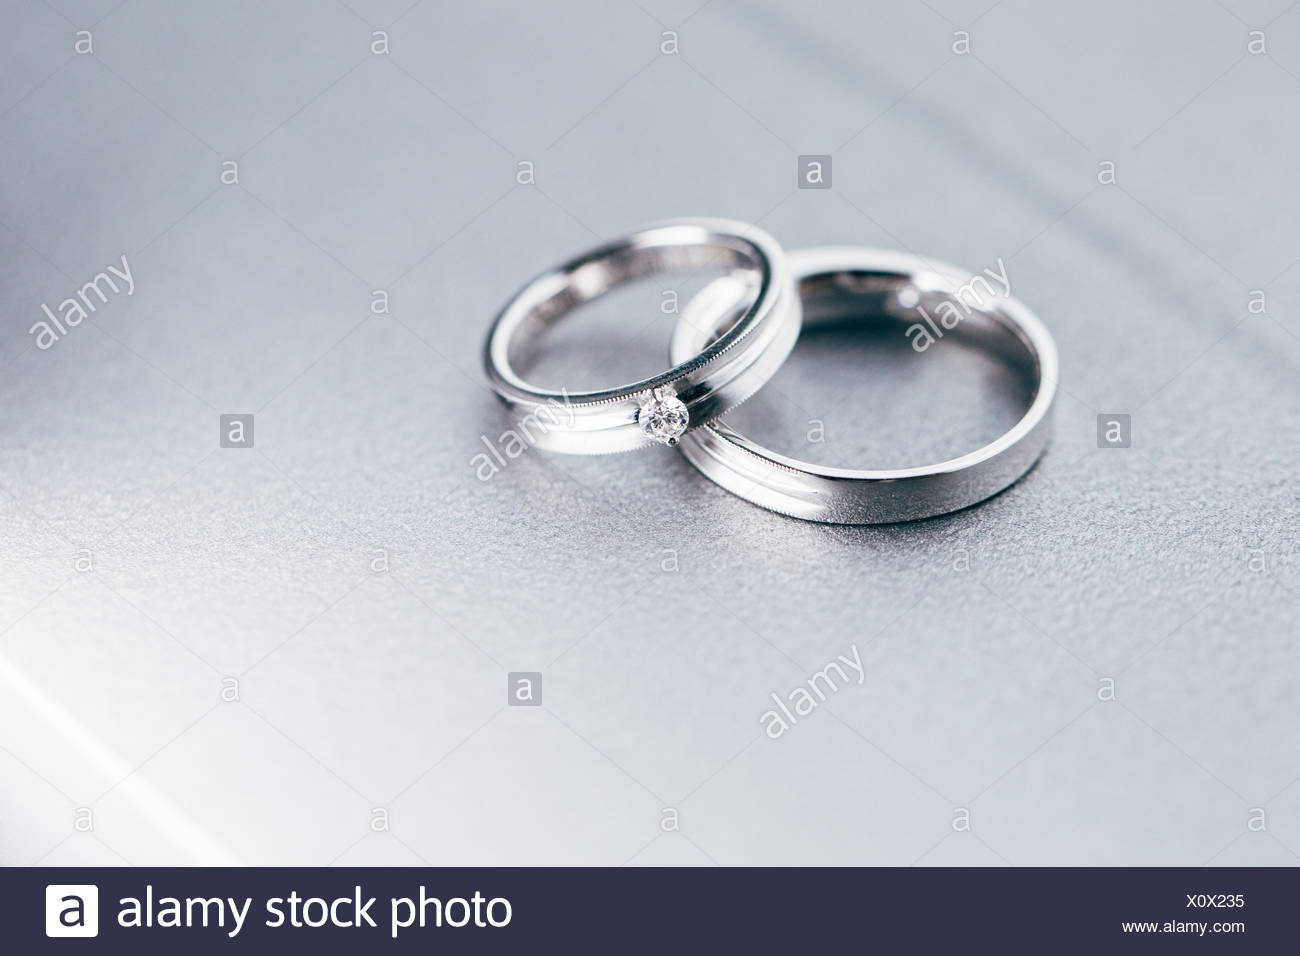 High Angle View Of Platinum Wedding Rings On Table - Stock Image